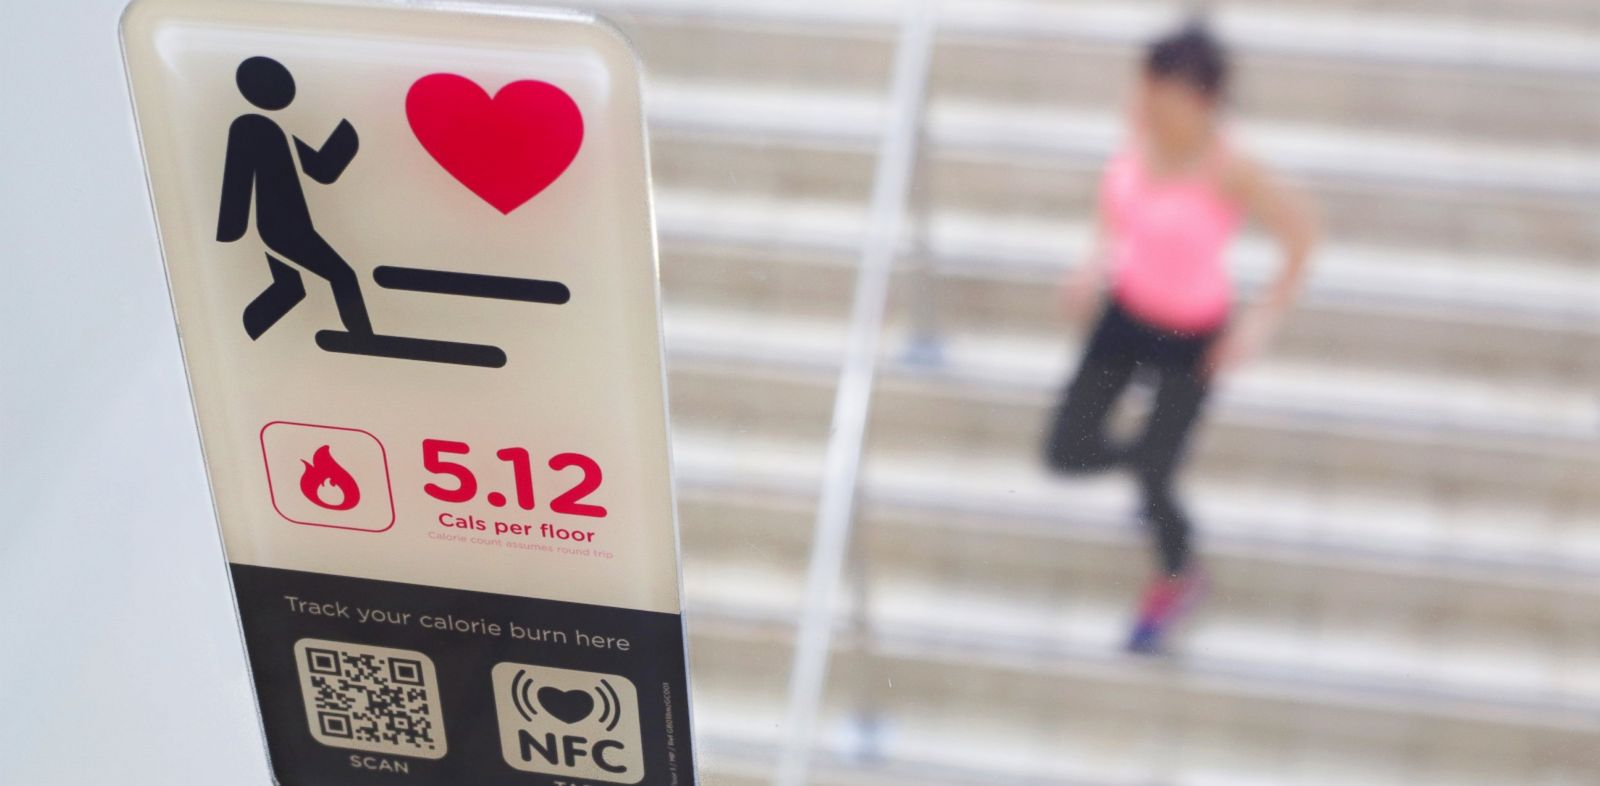 PHOTO: Office workers will have a chance to see how many calories they burn by taking the stairs.